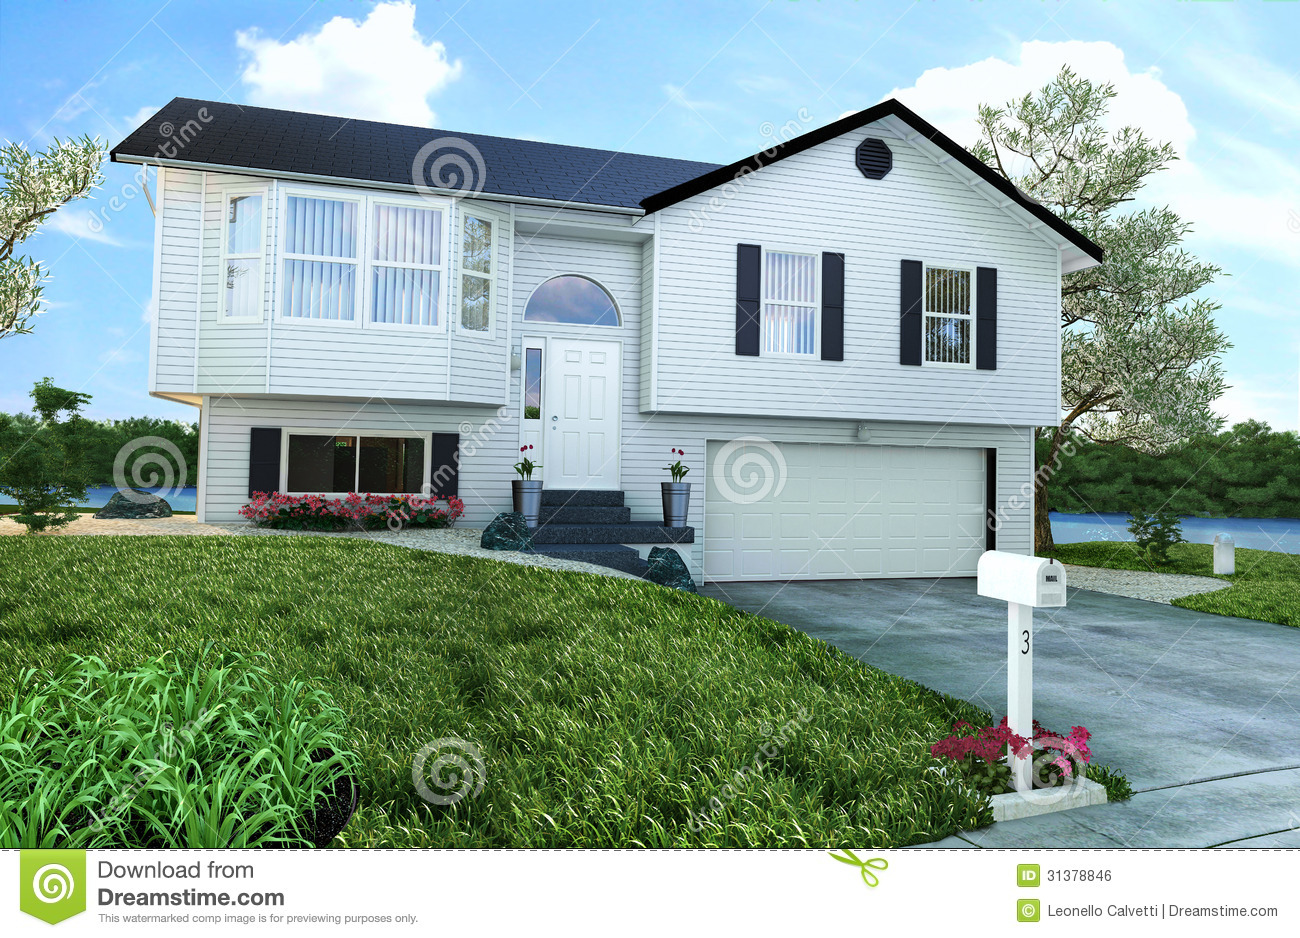 Typical American Wooden House With Garden Trees And A